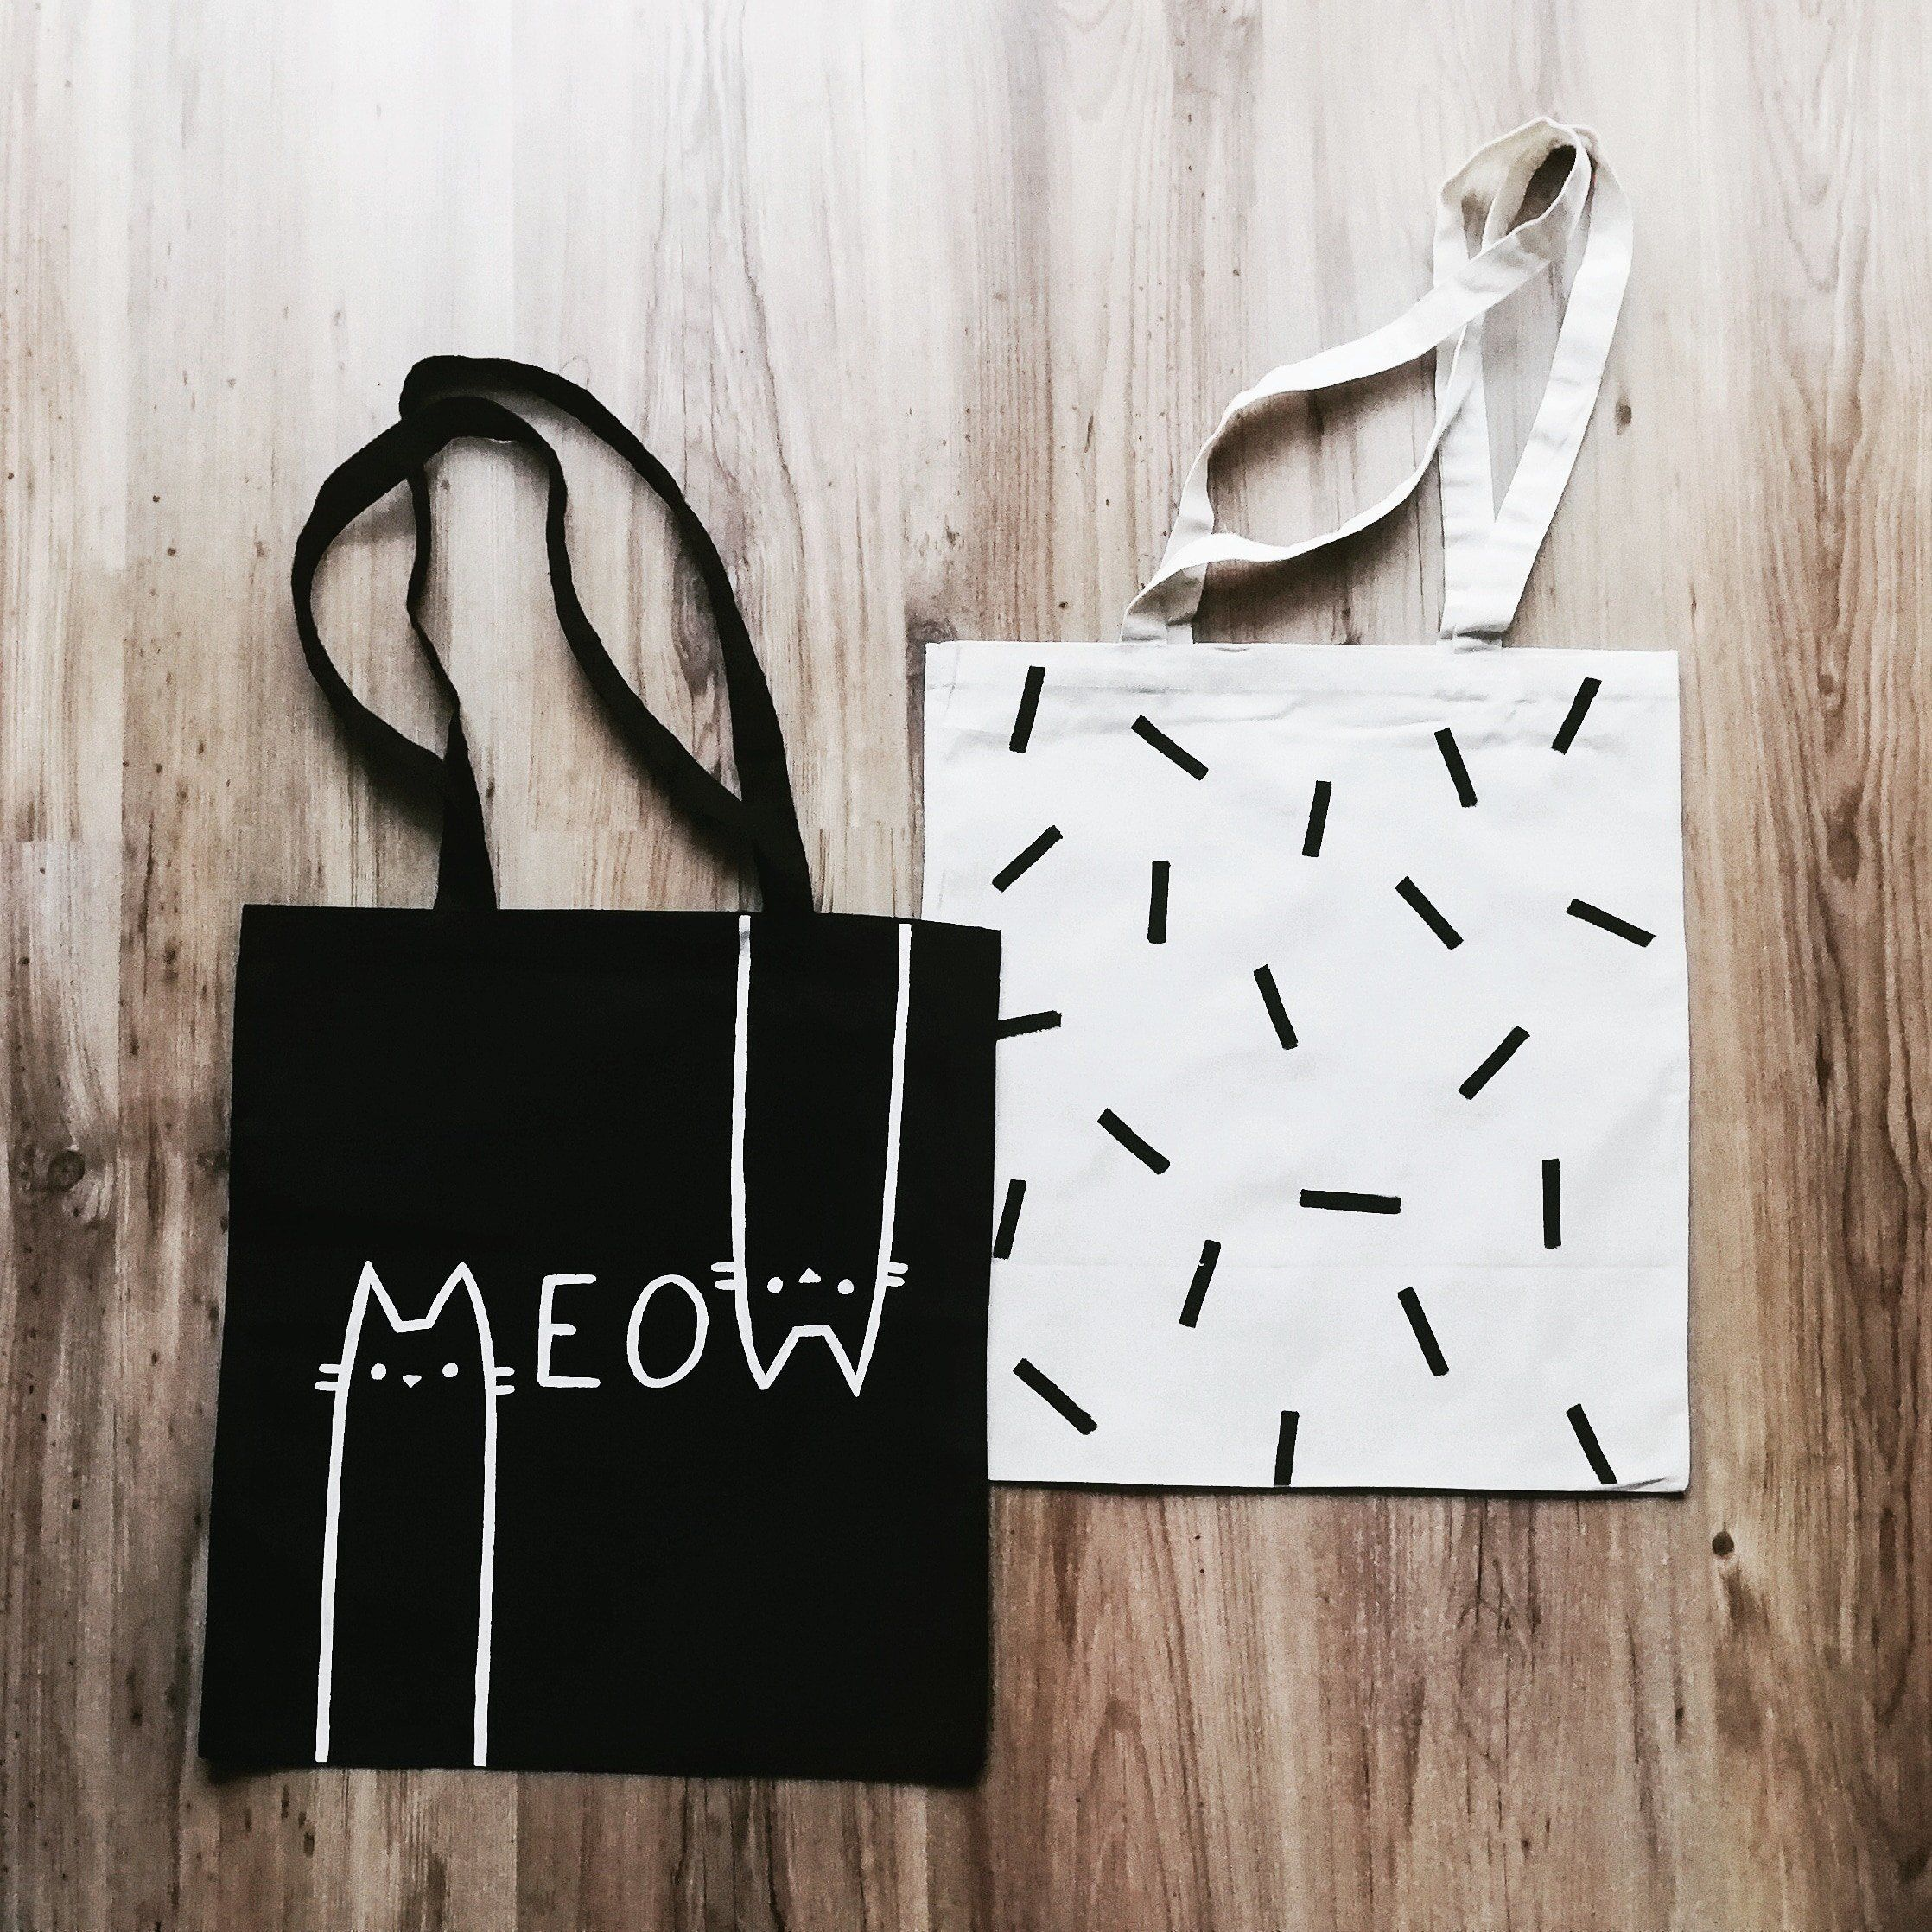 Meow cat purse hand painted cotton eco tote bag